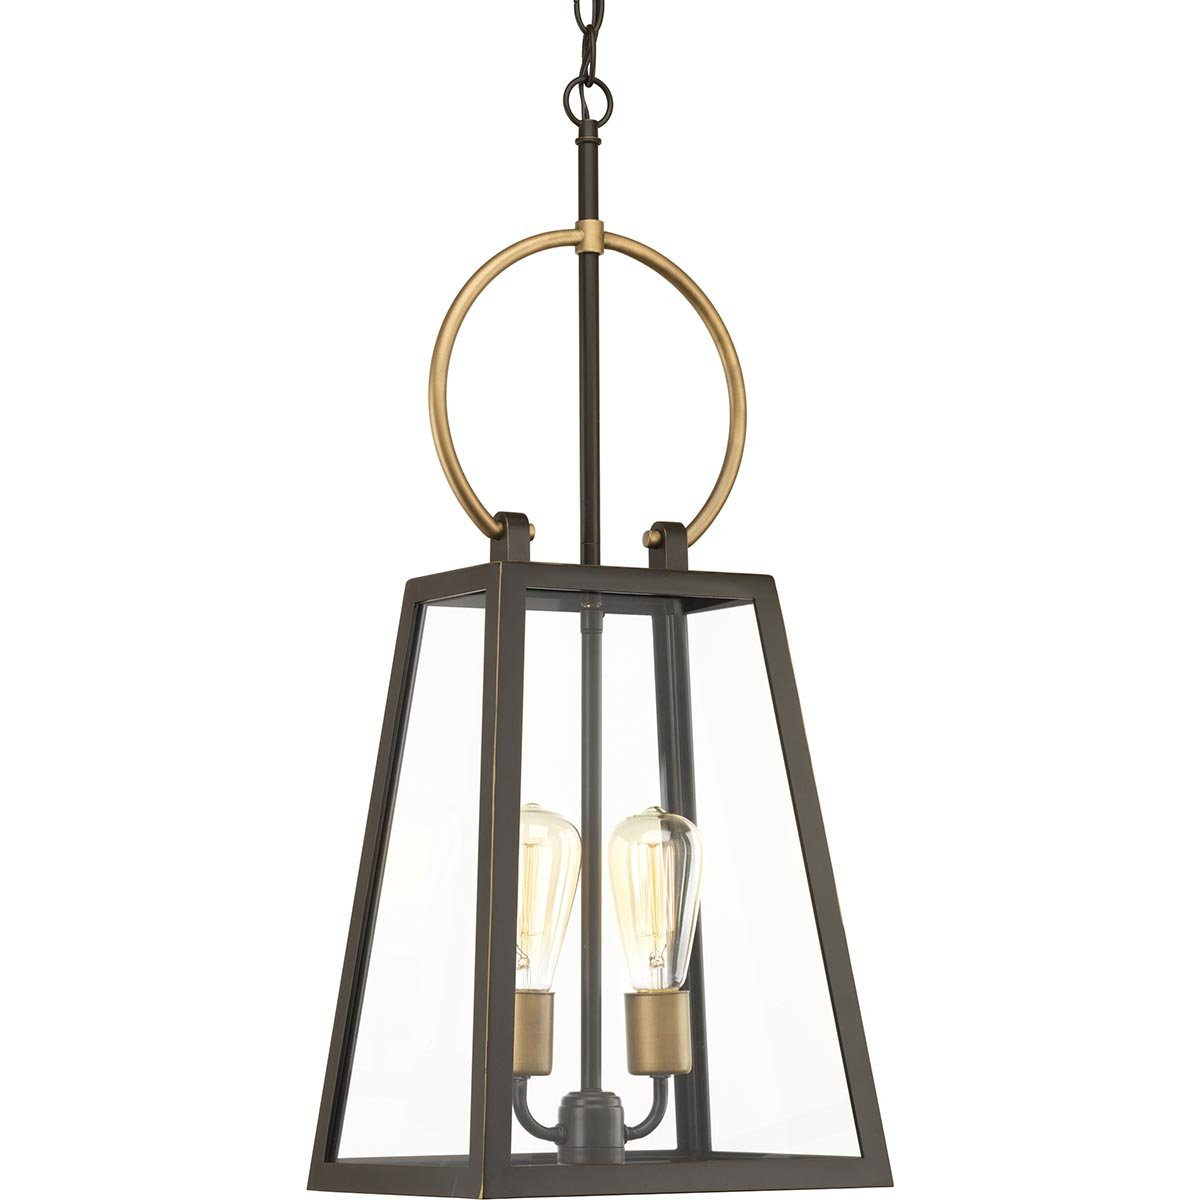 Progress Lighting P550028-020 Barnett Hanging Lantern, Brown